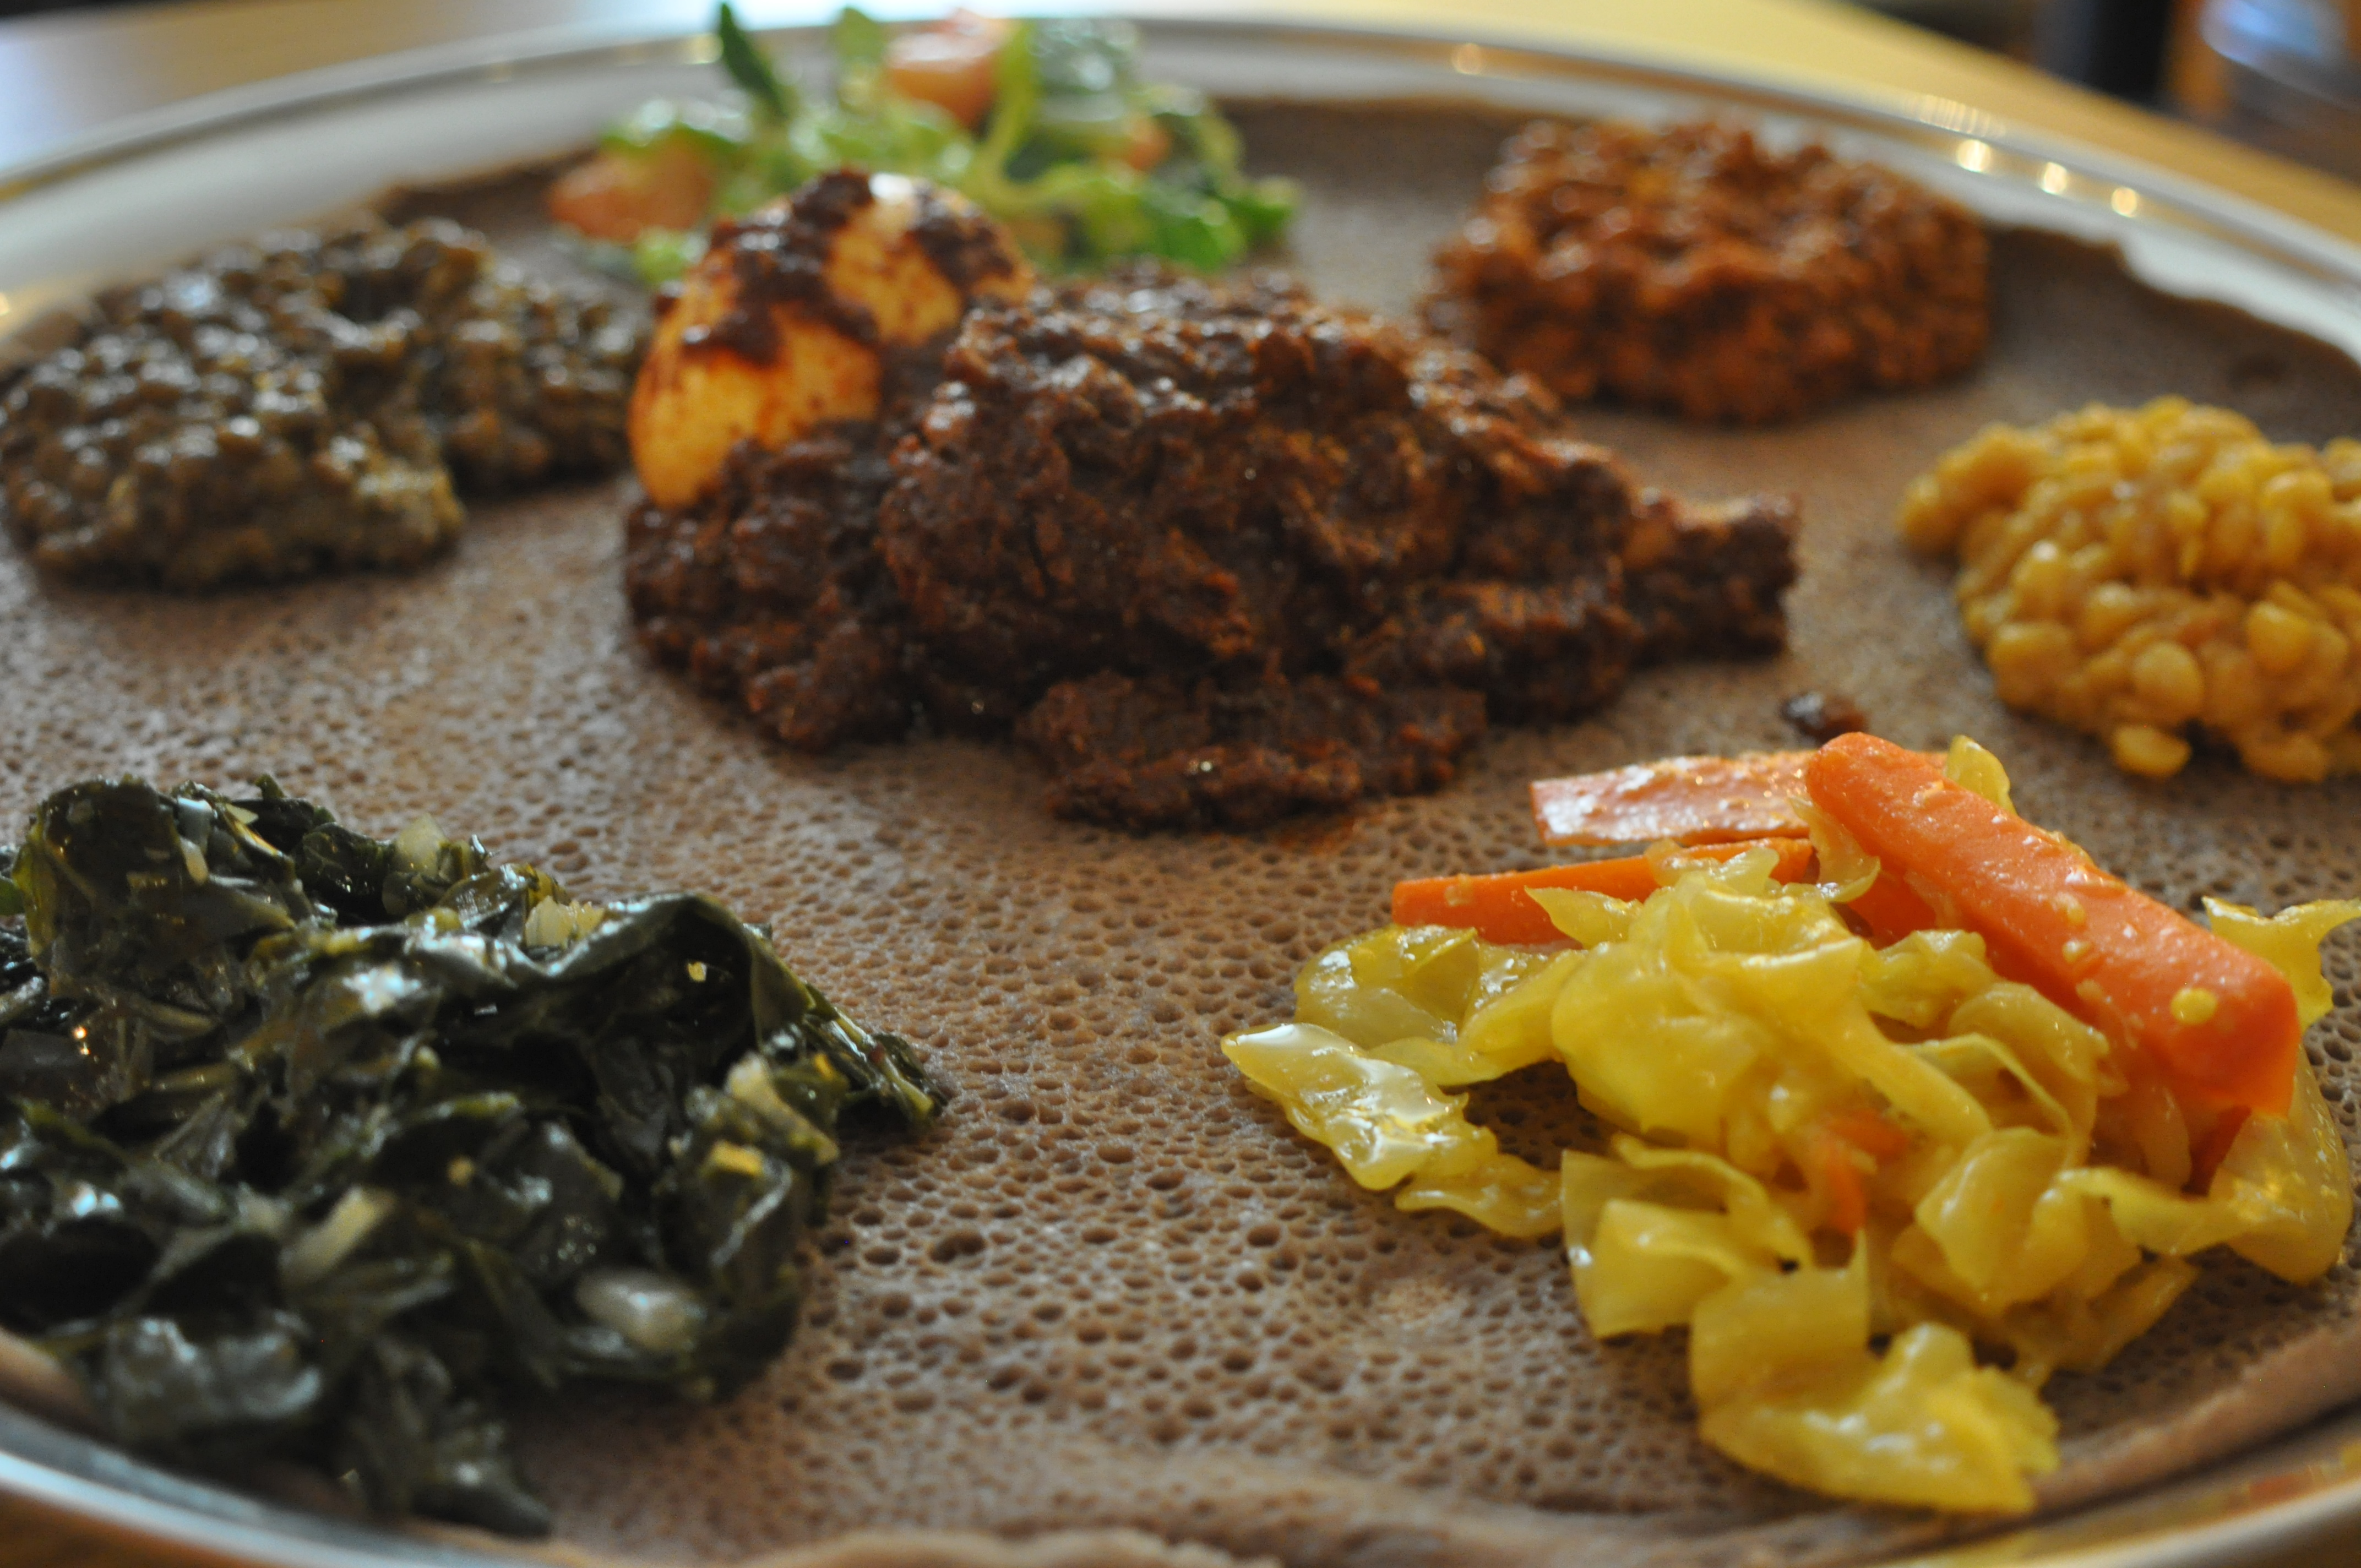 Our food 4 you chercher ethiopian restaurant for Cuisine you